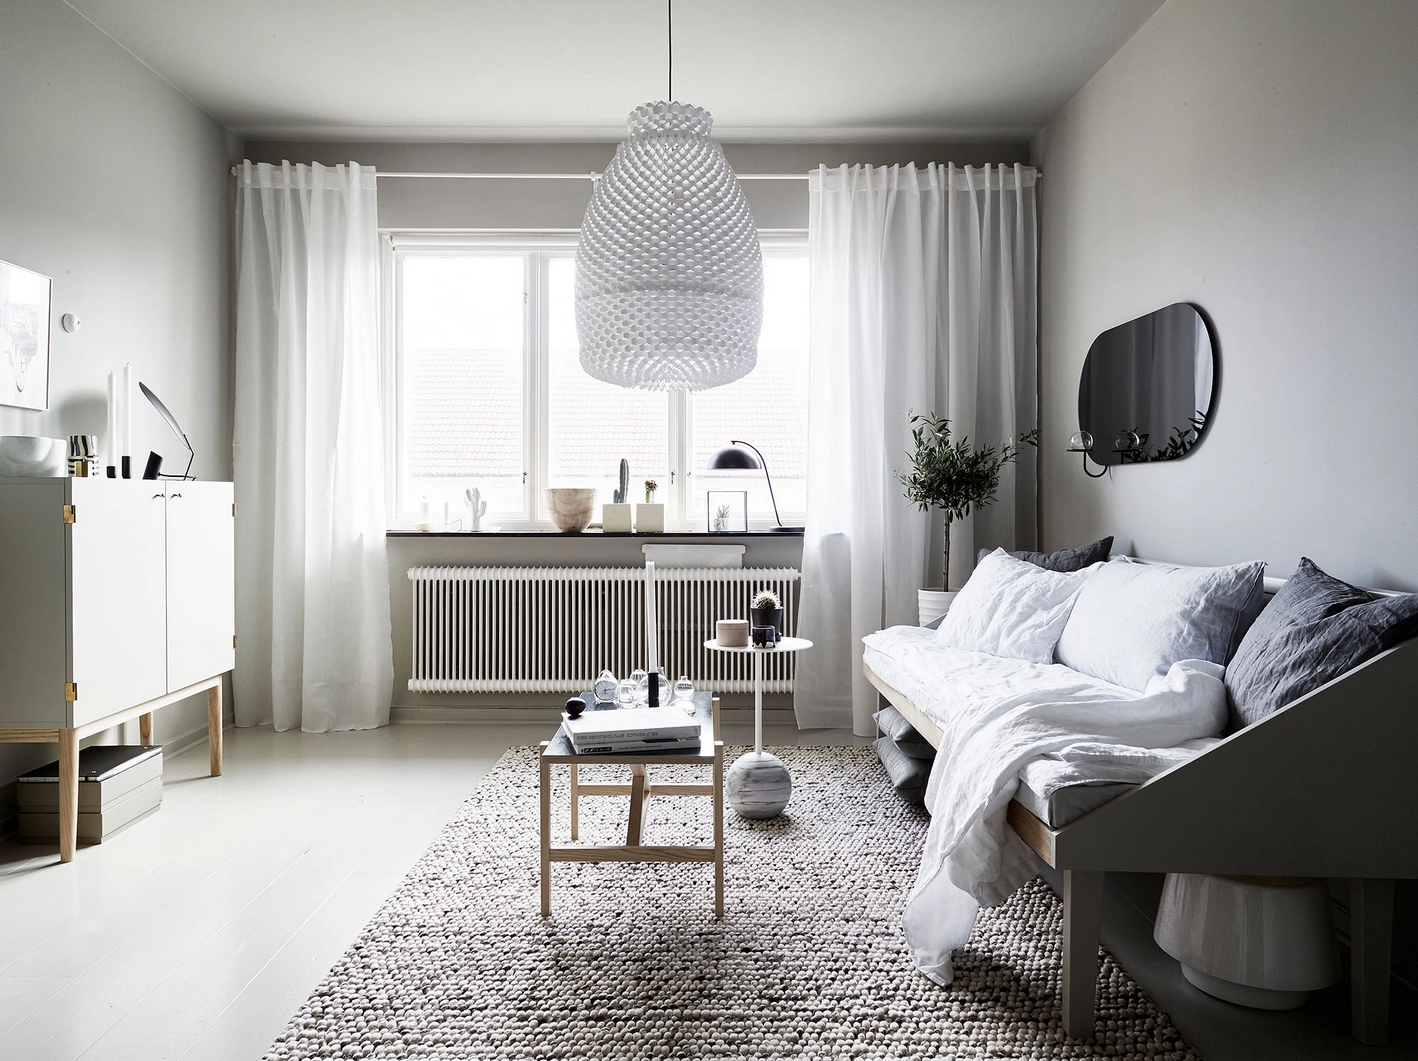 10 small space tips to try from this gorgeous studio apartment rue - Deco kleine studio ...